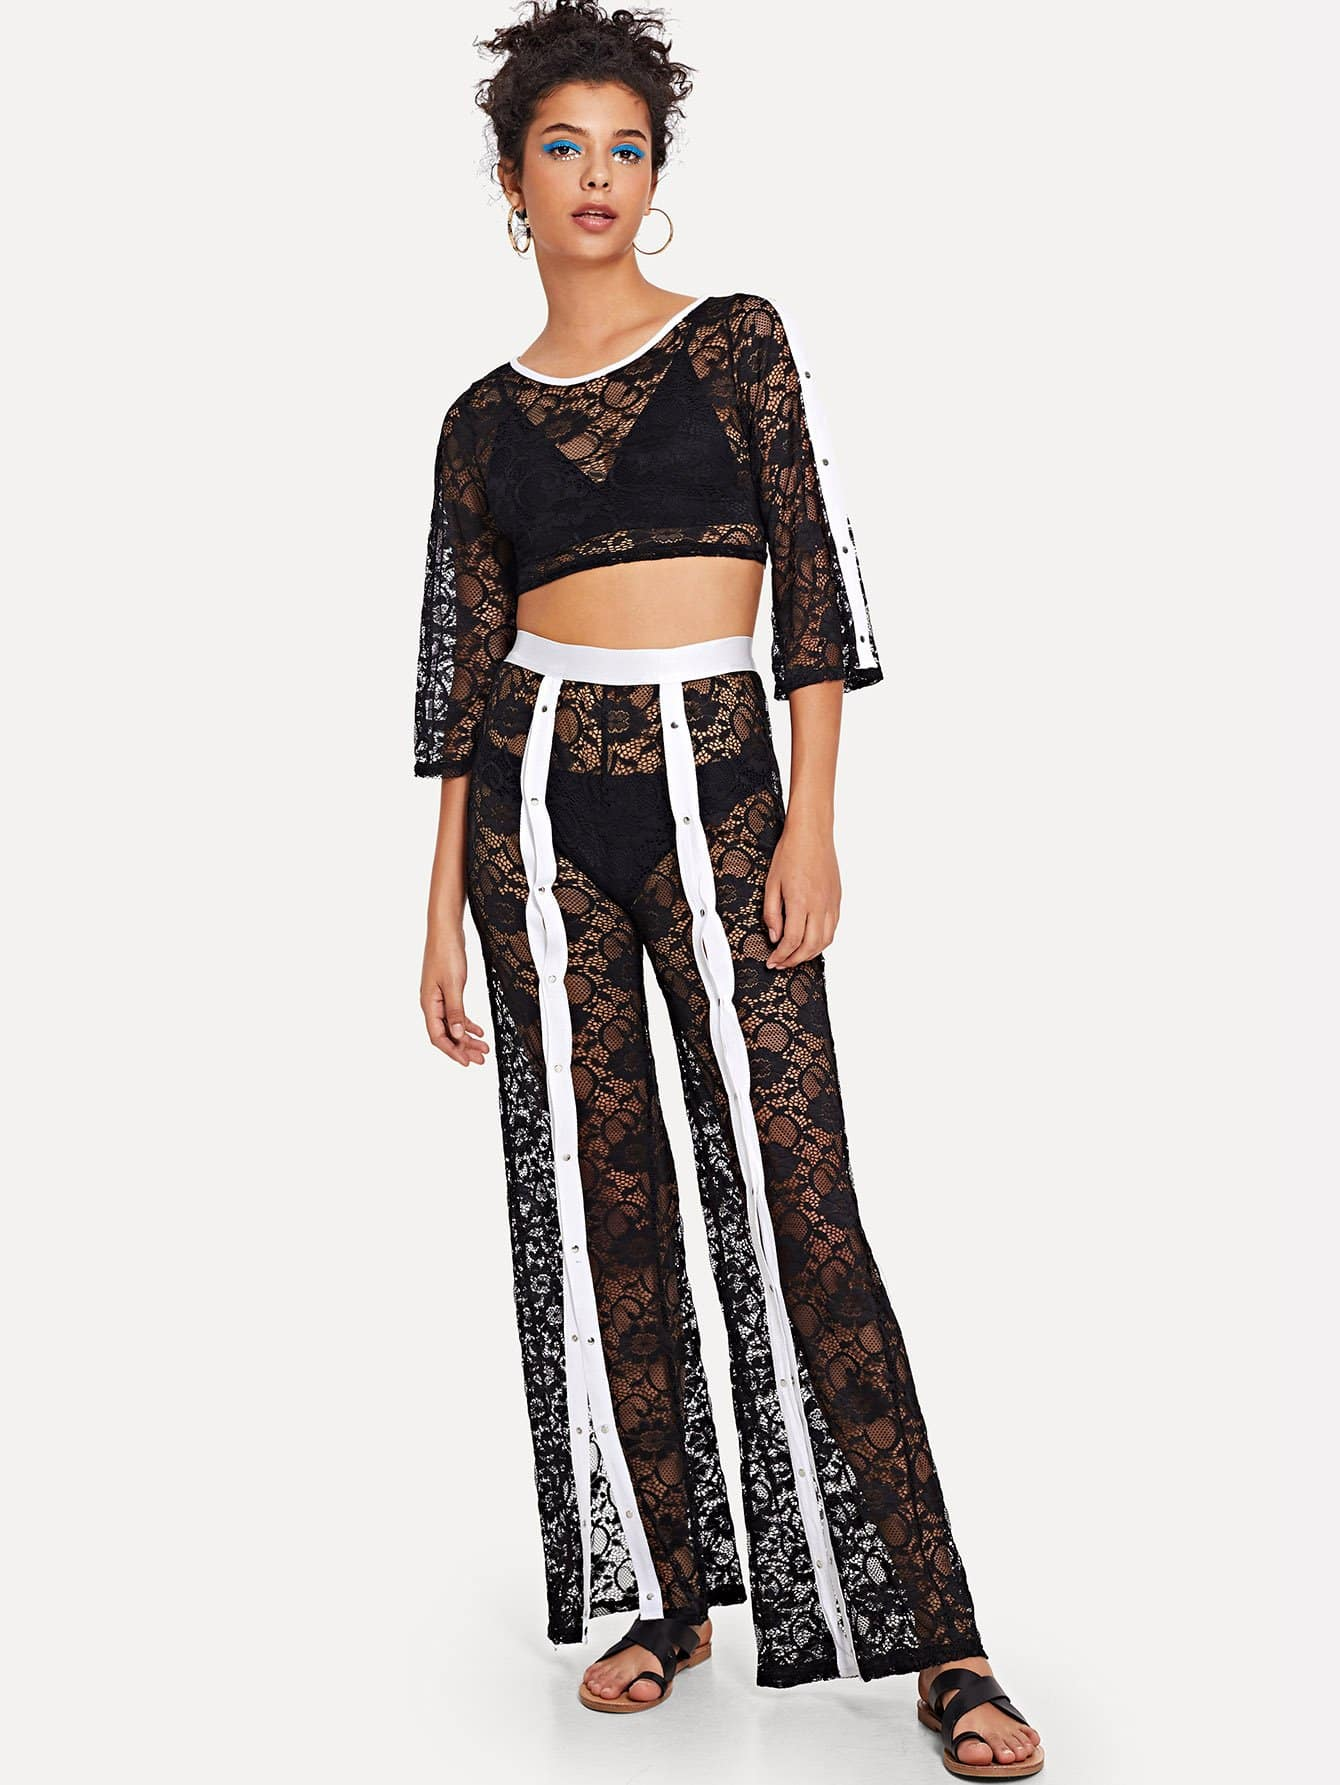 Sheer Lace Crop Top and Contrast Snap Button Front Pants Set kids adult printed beanbag lounger sofa cover chairs outdoor pouf puff couch lazy bean bag sofas without filling seat tatami